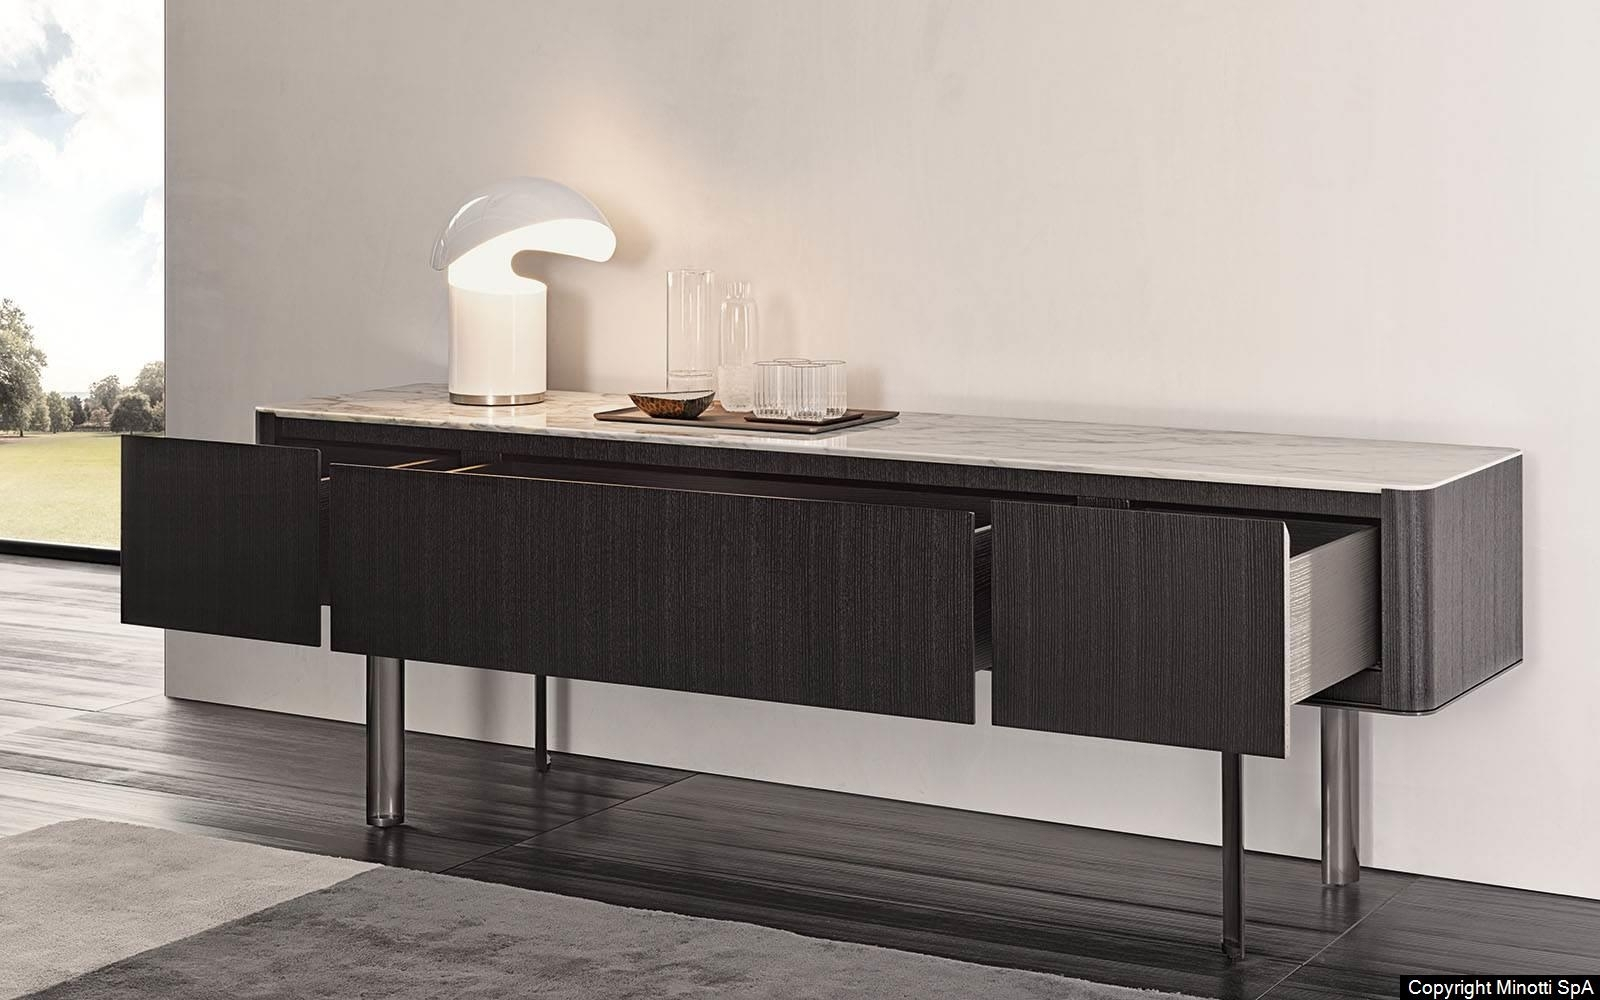 Lou Sideboard - Minotti | Dedece pertaining to Parrish Sideboards (Image 17 of 30)